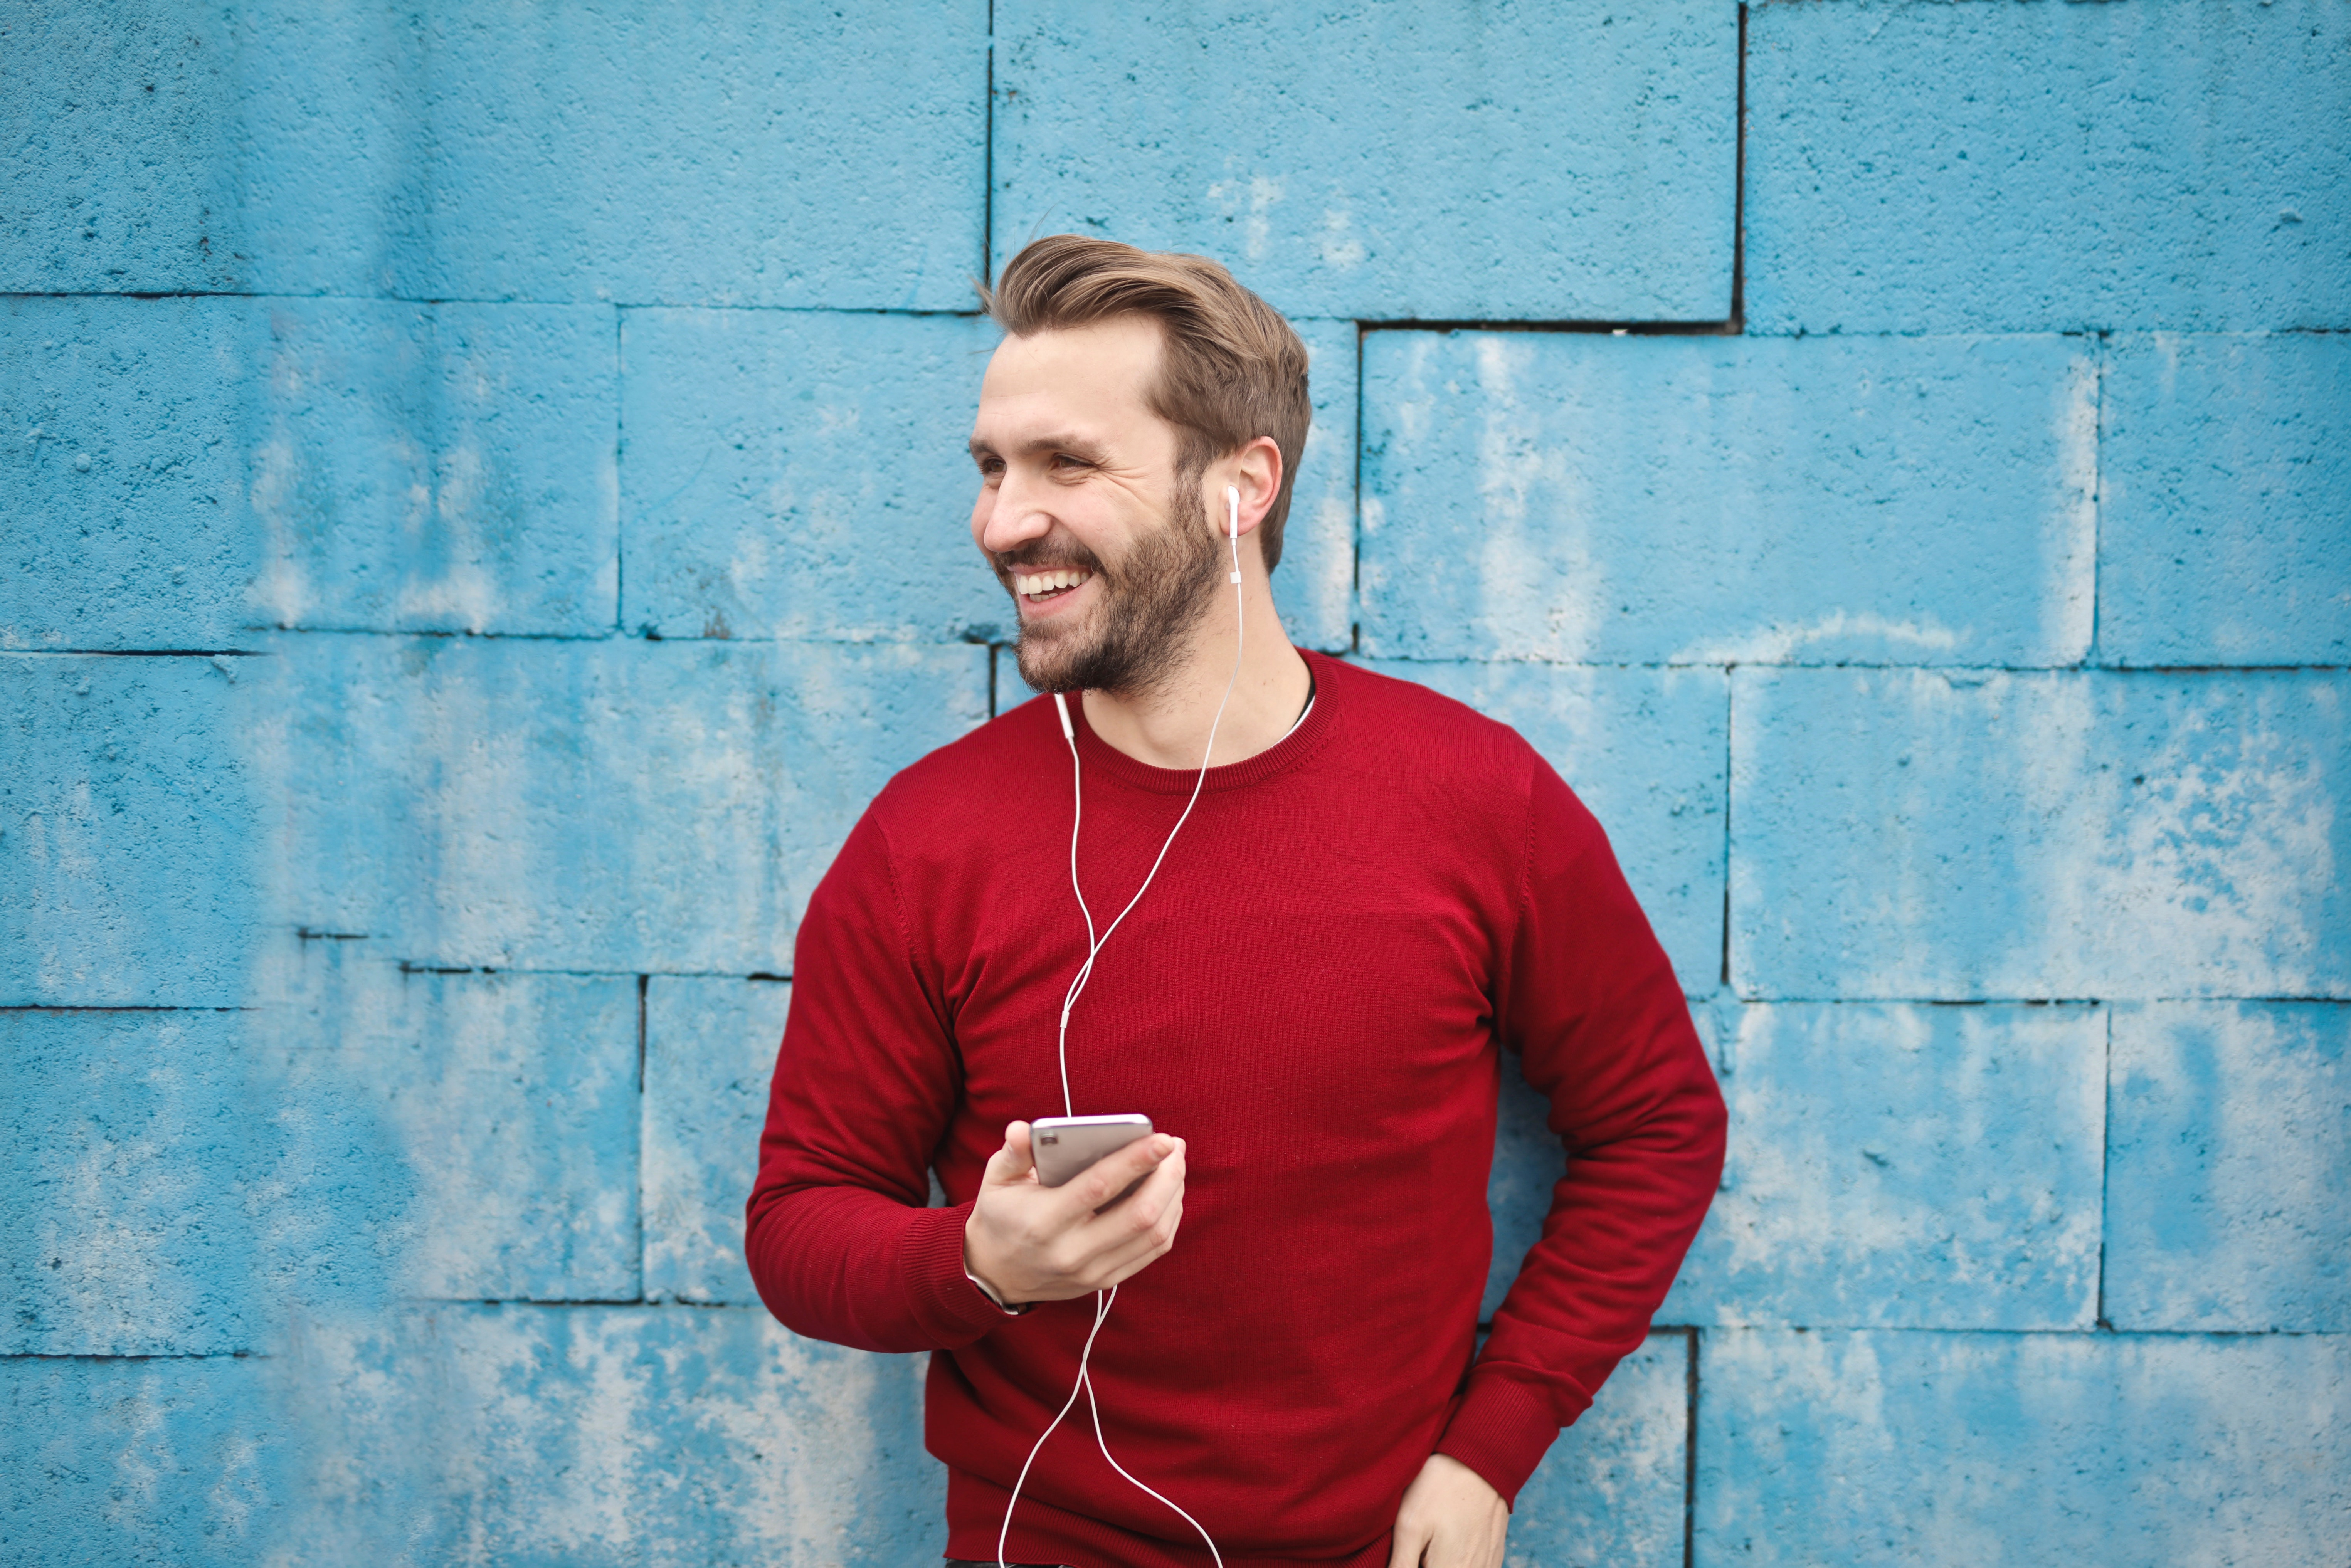 Photo of a Man Listening Music on his Phone, Smartphone, Phone, Mobile phone, Man, HQ Photo